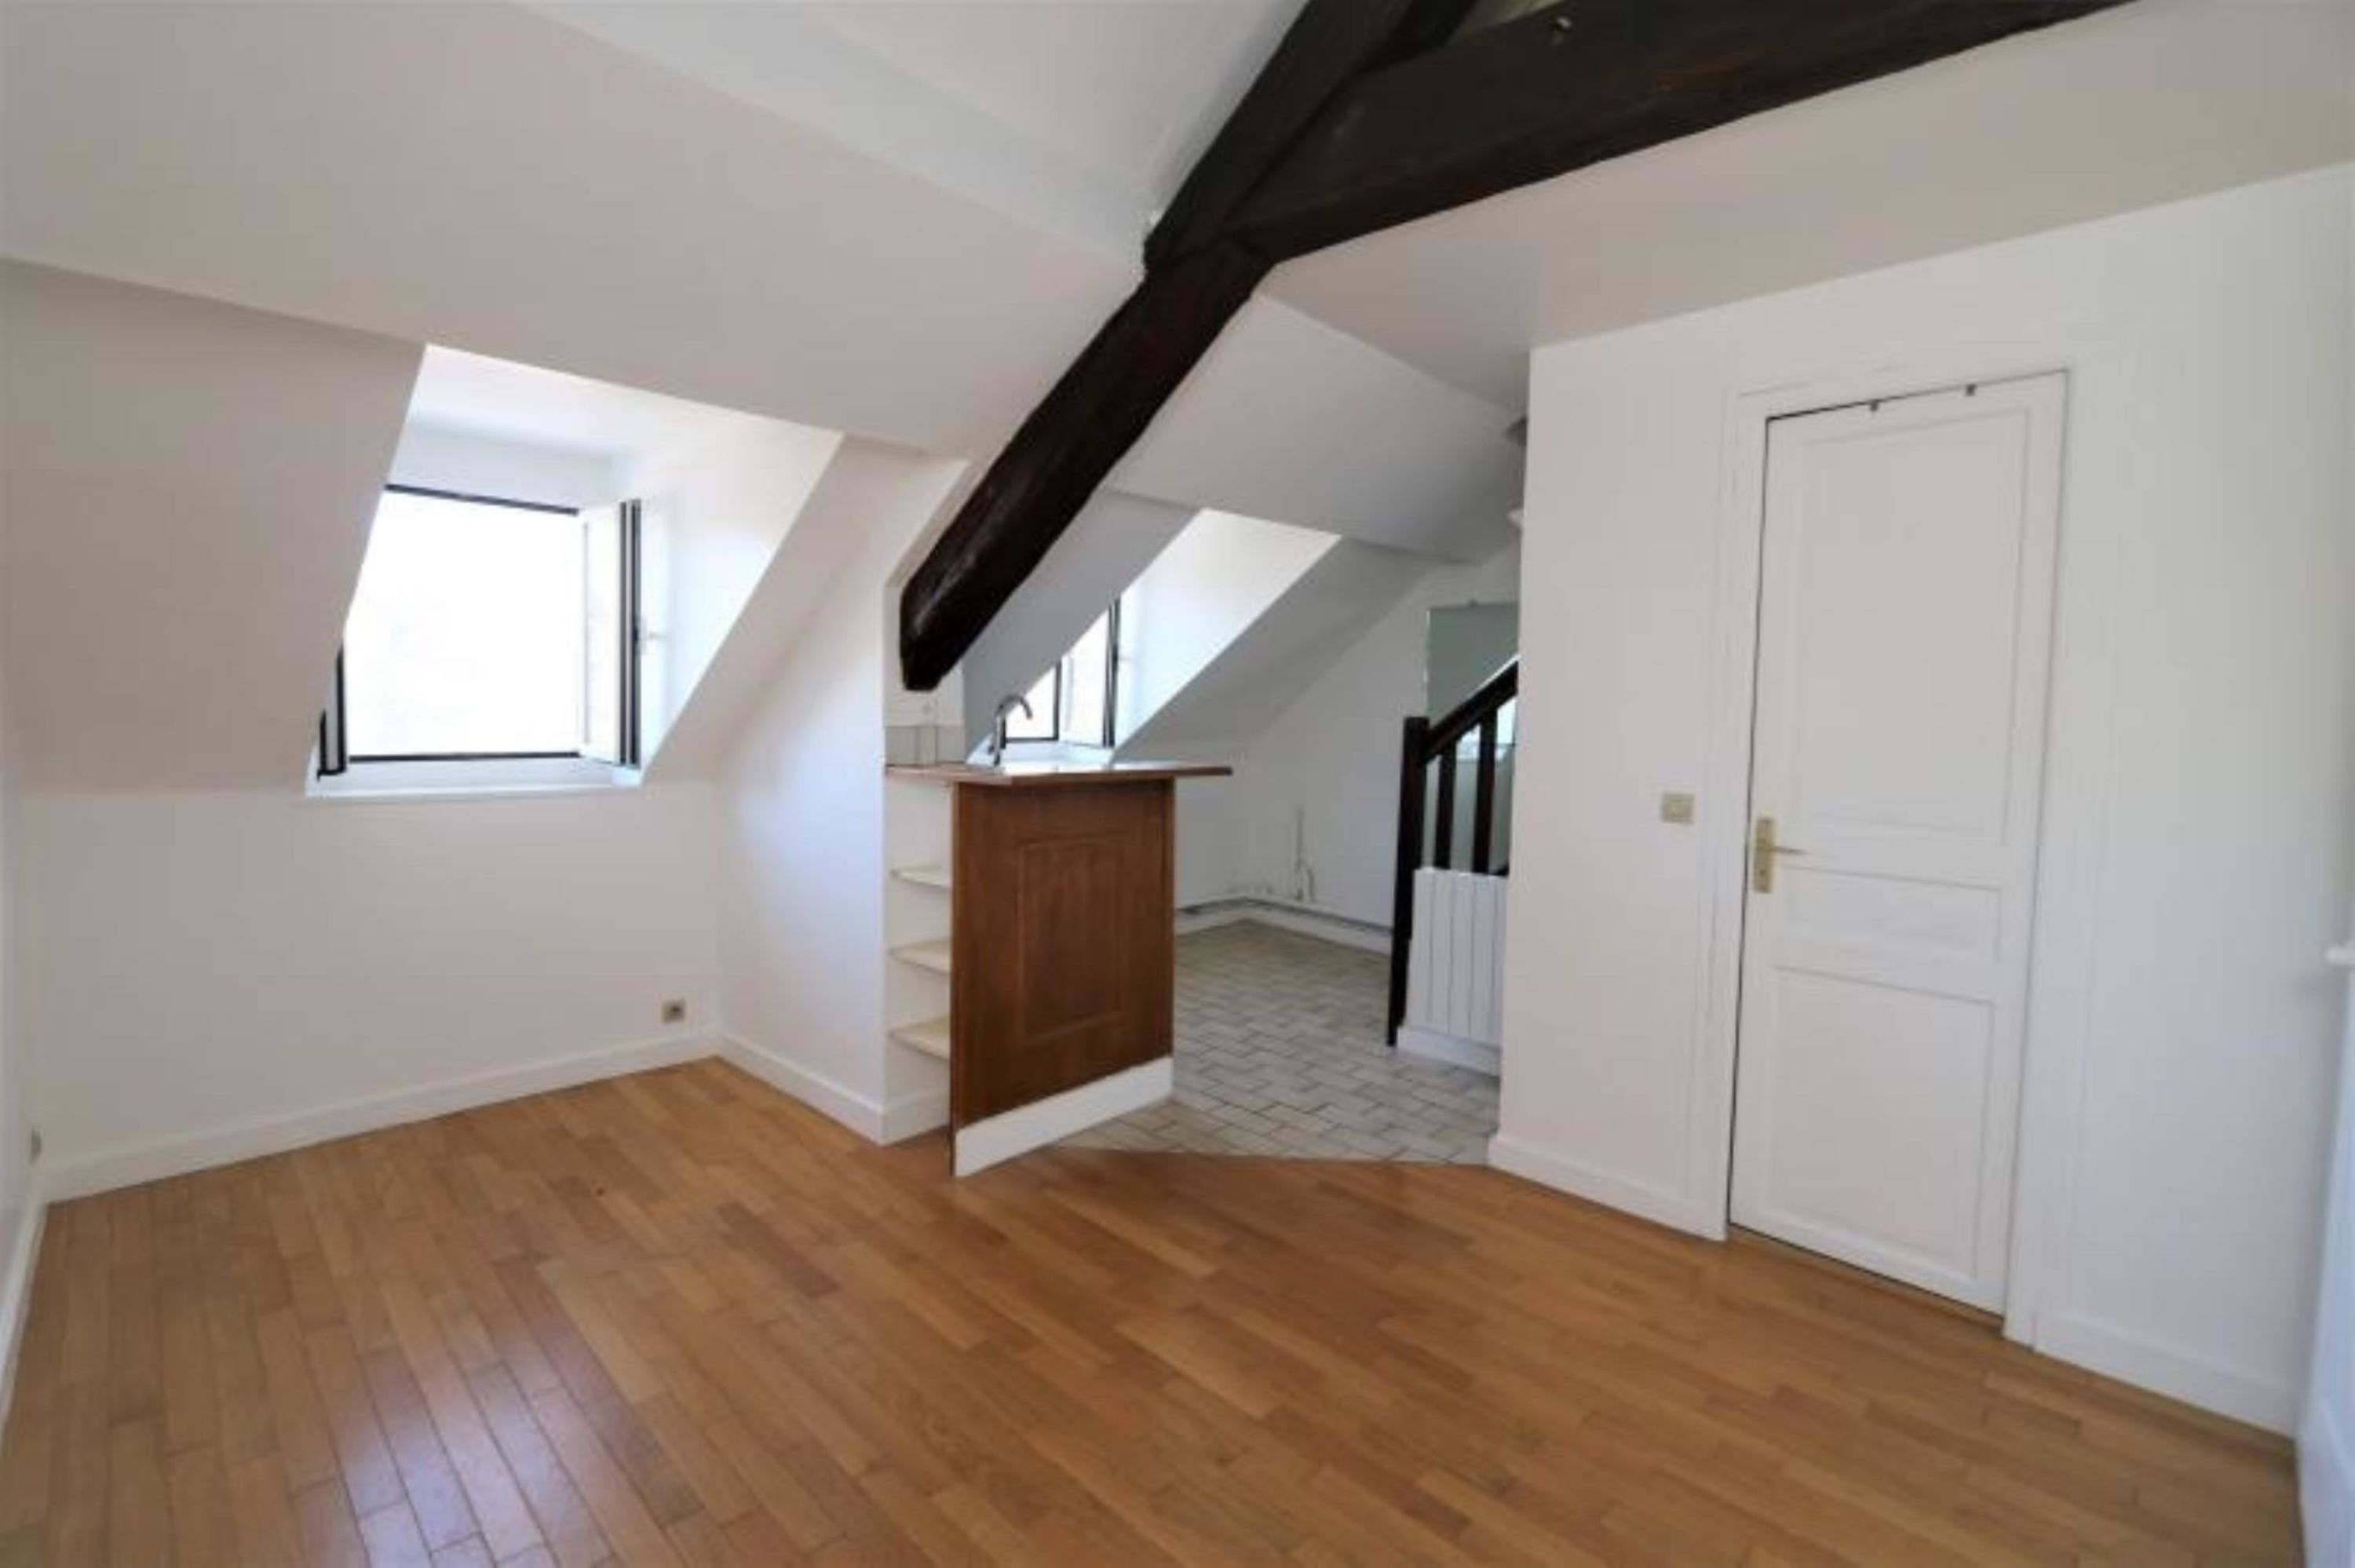 agence immobilière sevres 92 le chesnay 78 achat vente location appartement maison immobilier LMHT ANF DMLEETQL